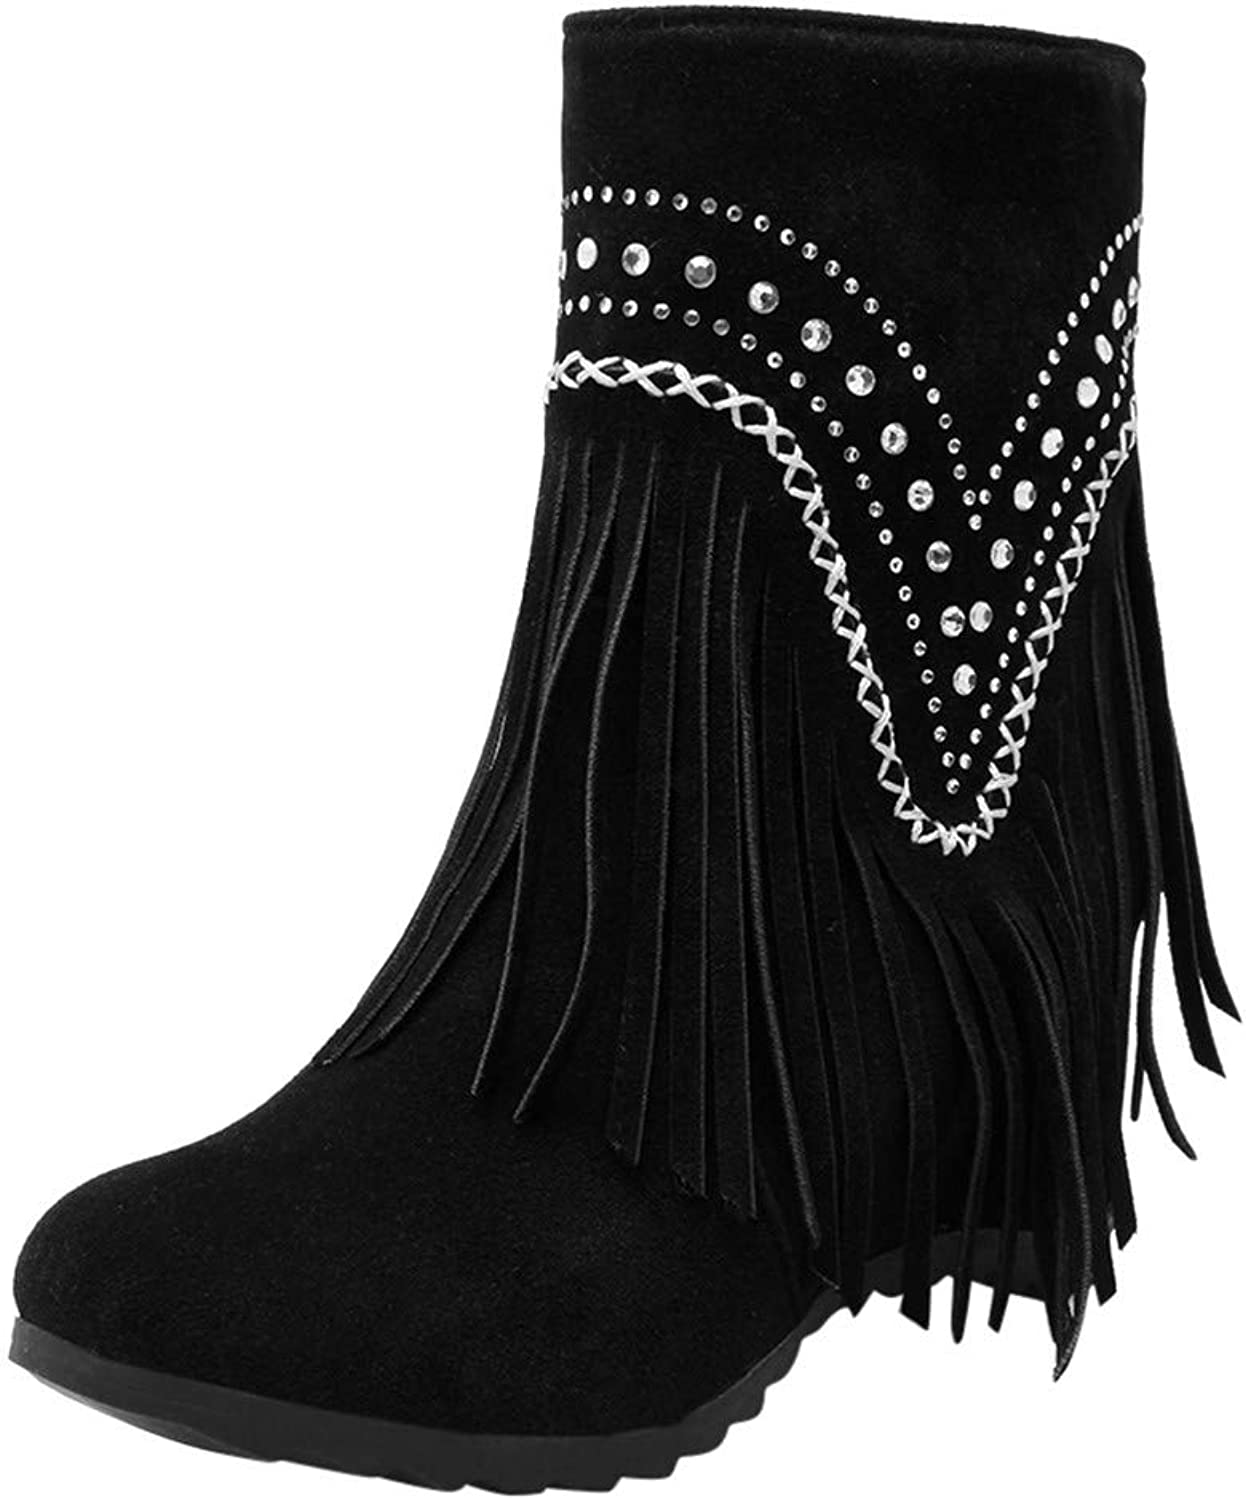 RedBrowm-women Warm Solid Tassel Crystal Increase Retro Ankle Boots Round Toe shoes Black